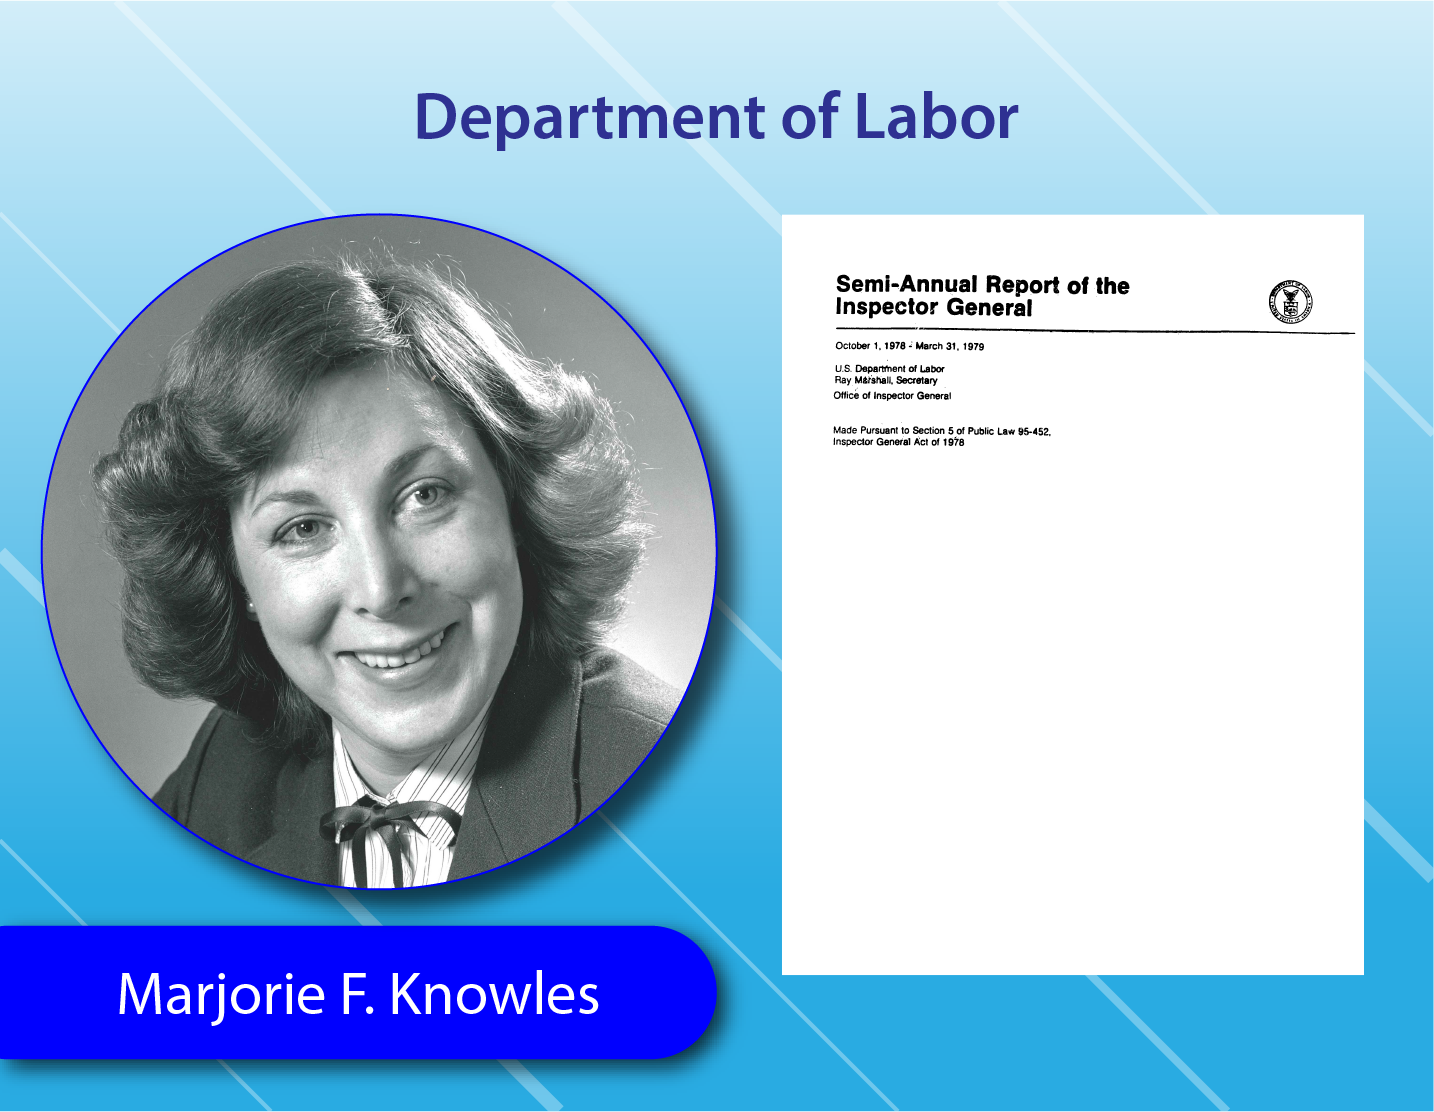 Department of Labor - Marjorie F. Knowles